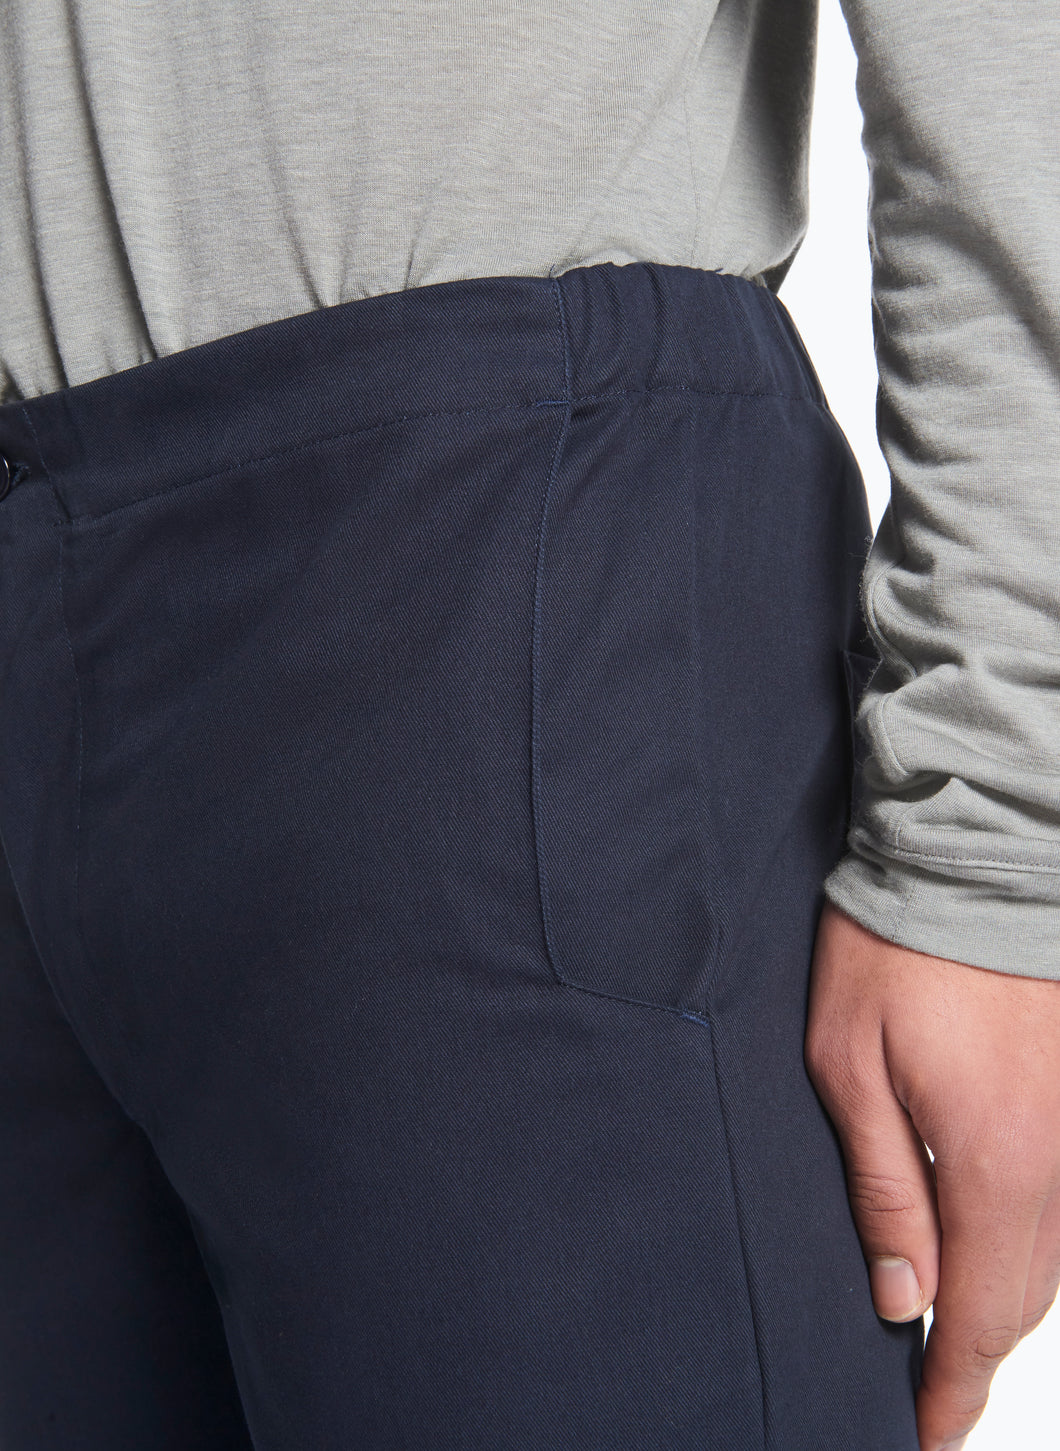 Pants with Notched Pockets in Navy Blue Gabardine